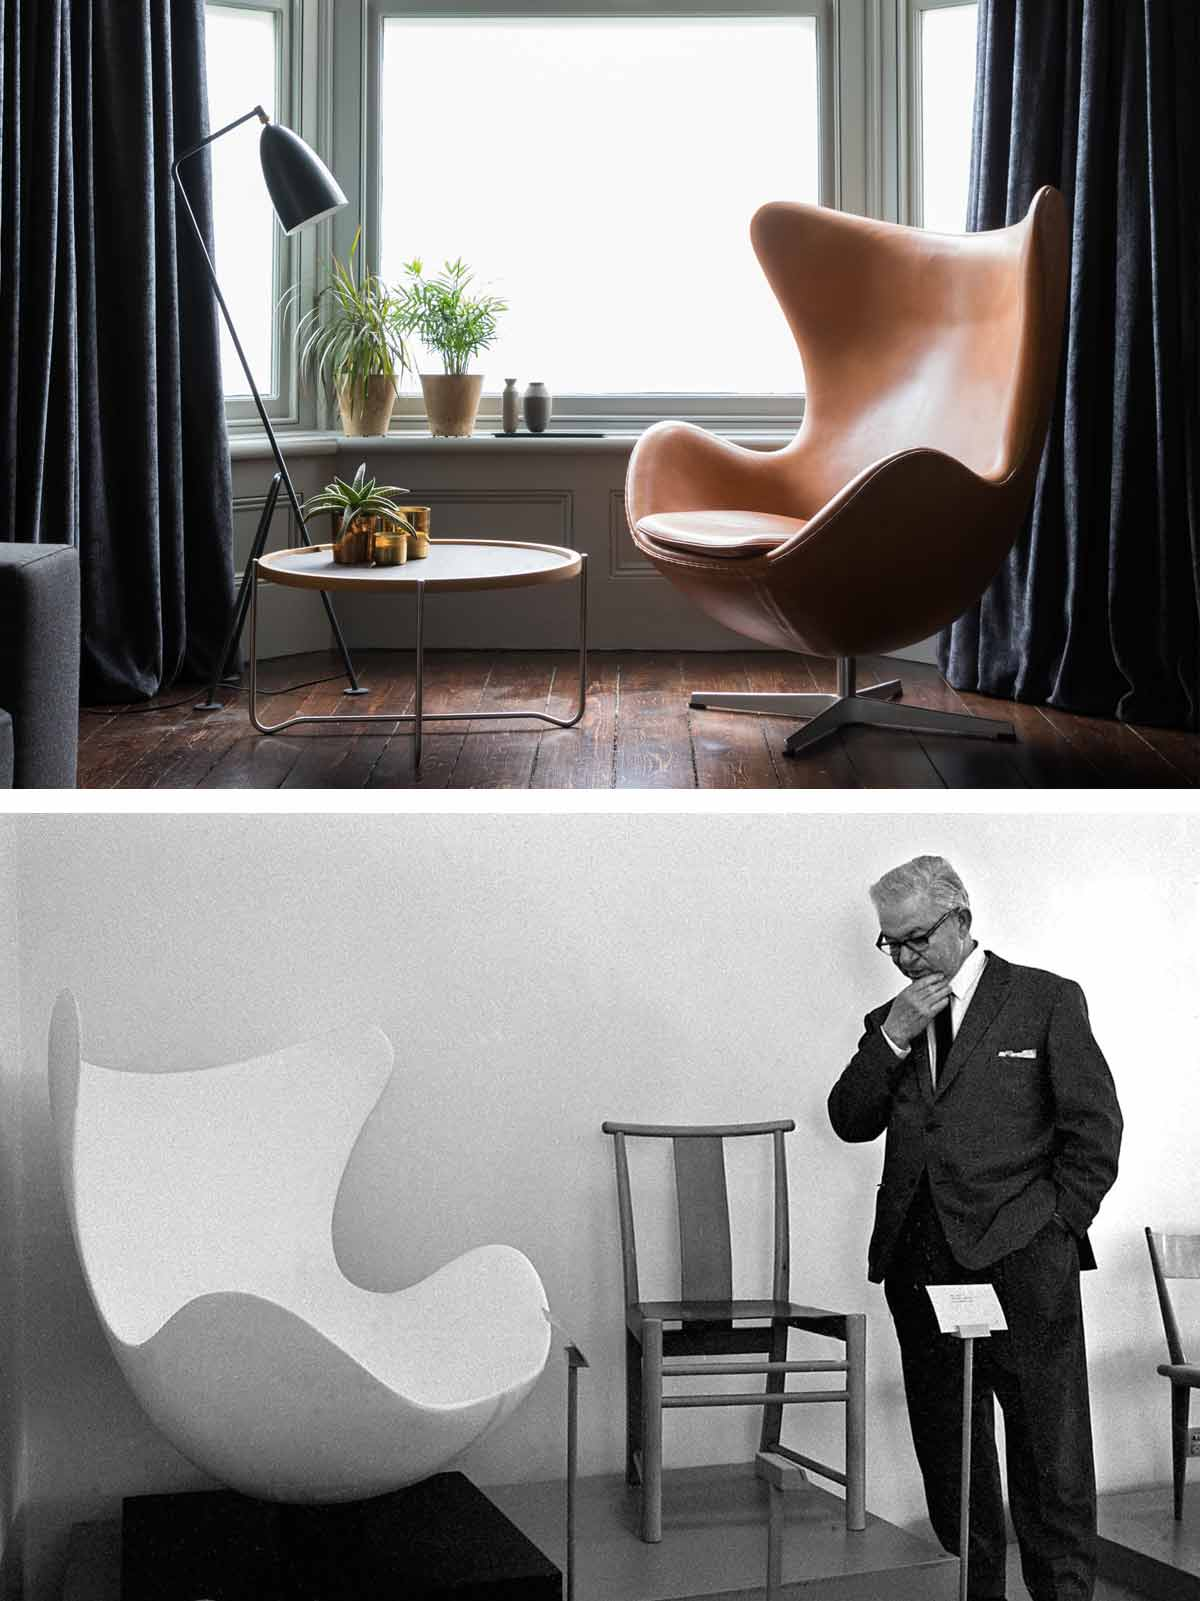 The iconic Egg chair in domestic and gallery settings